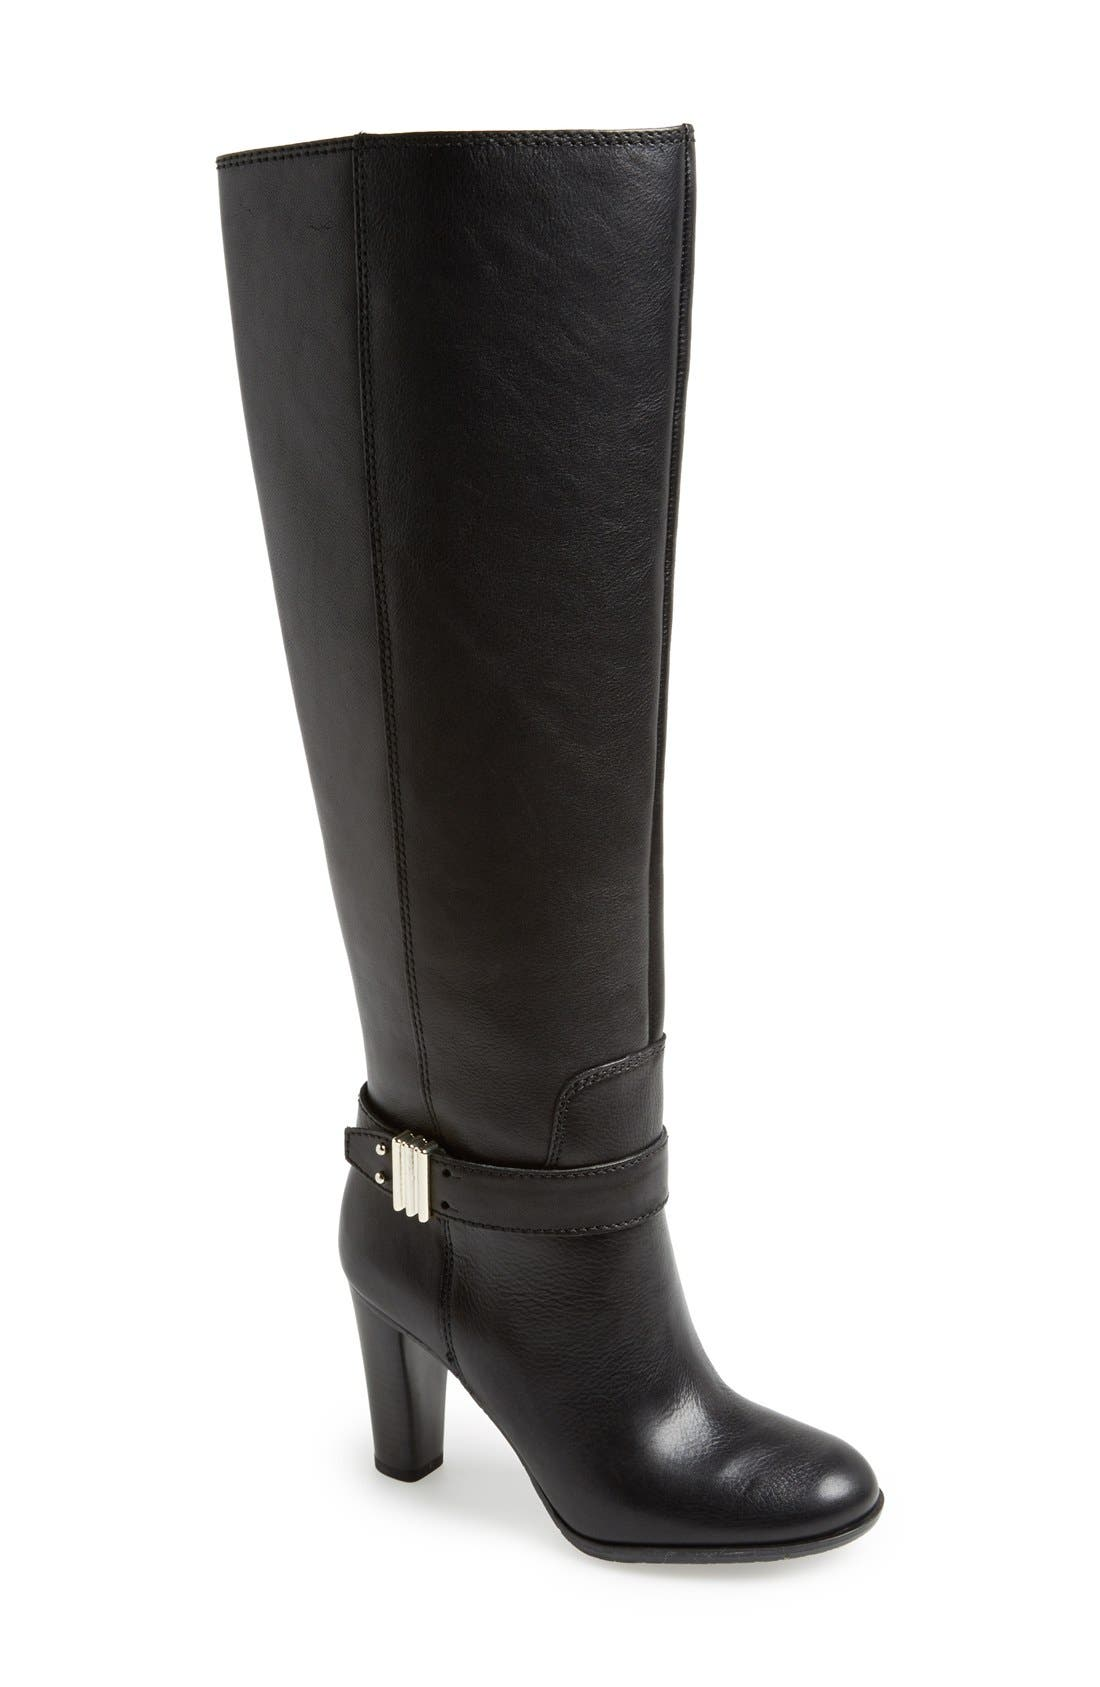 Main Image - Enzo Angiolini 'Sumilo' Boot (Wide Calf) (Women)